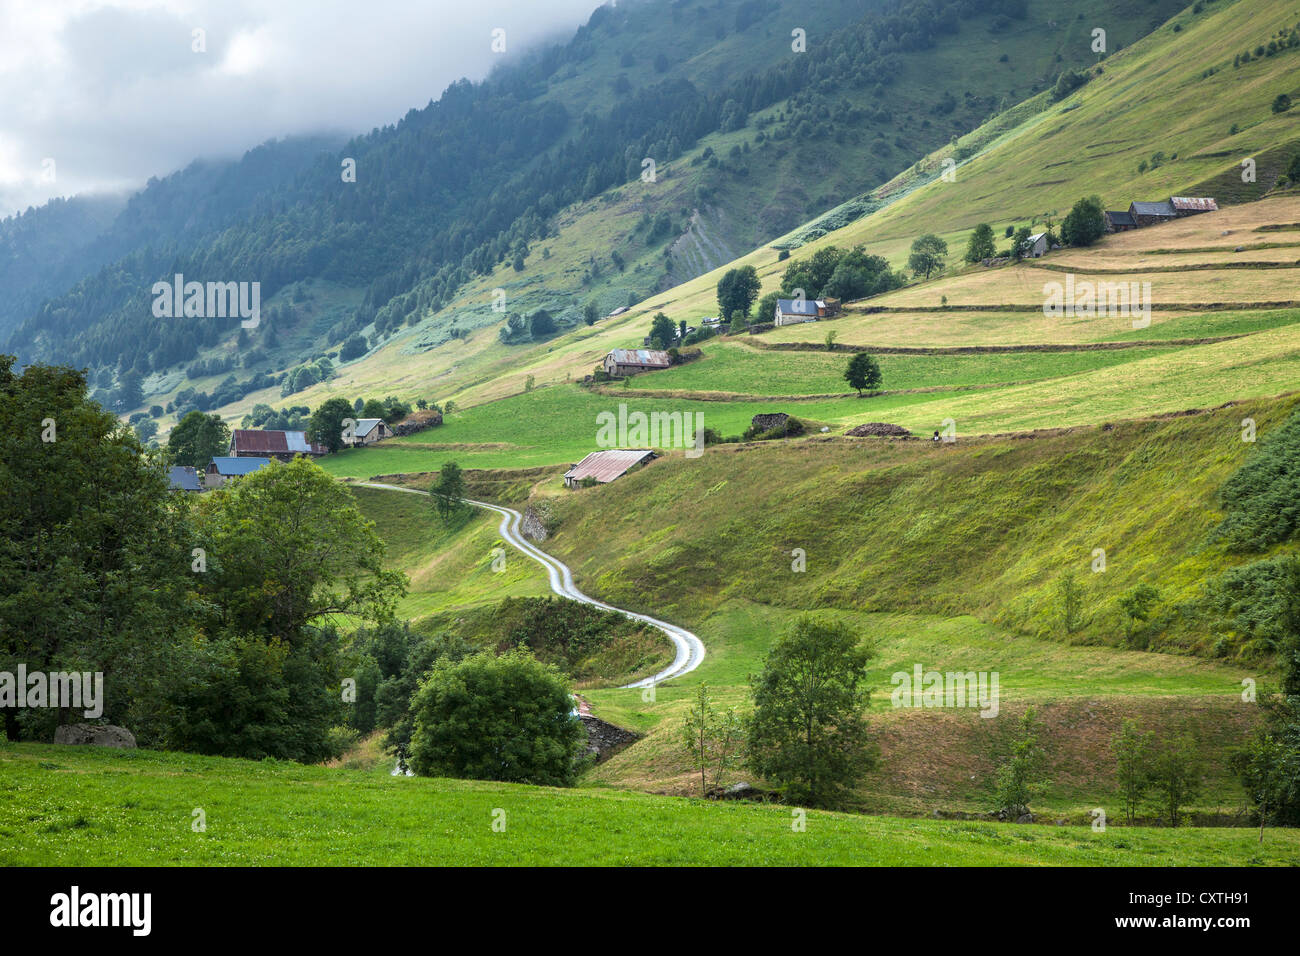 Scenery in the Pyrenees near Luz Saint Sauveur, Haute Pyrenees, France - Stock Image